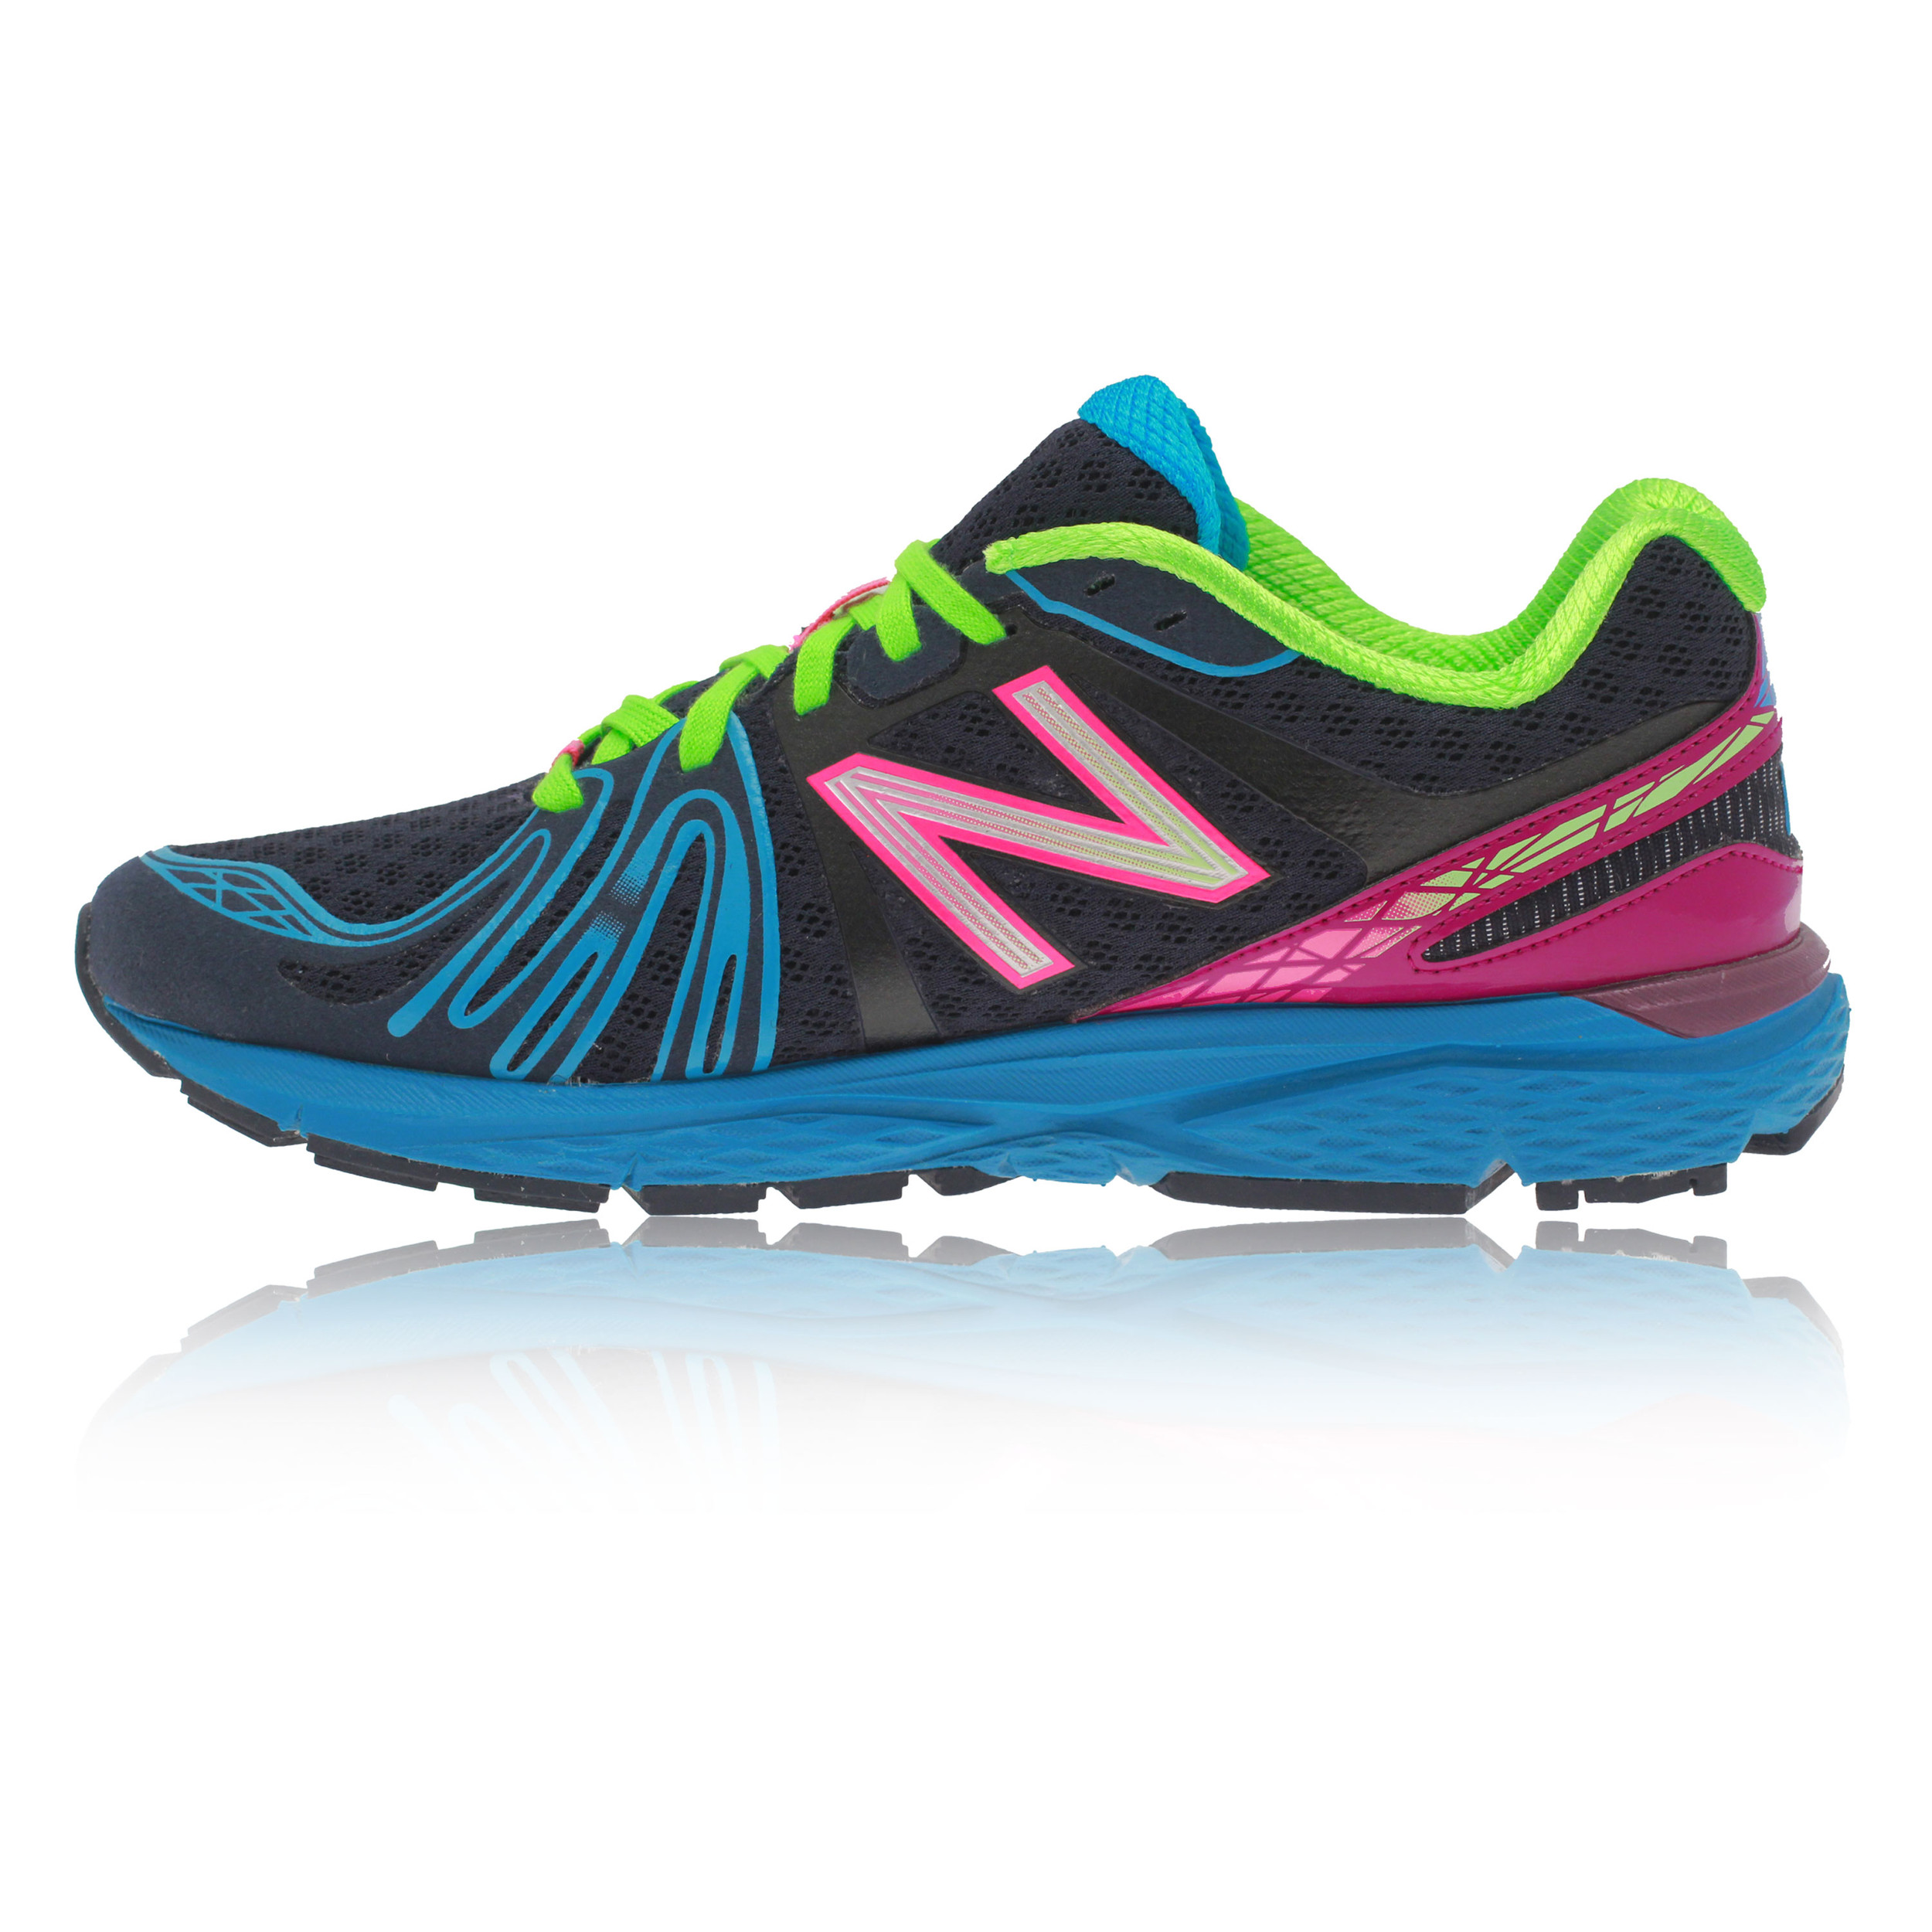 Excellent Of Stock Shop All New Balance Running Shoes Women S Running Shoes  New